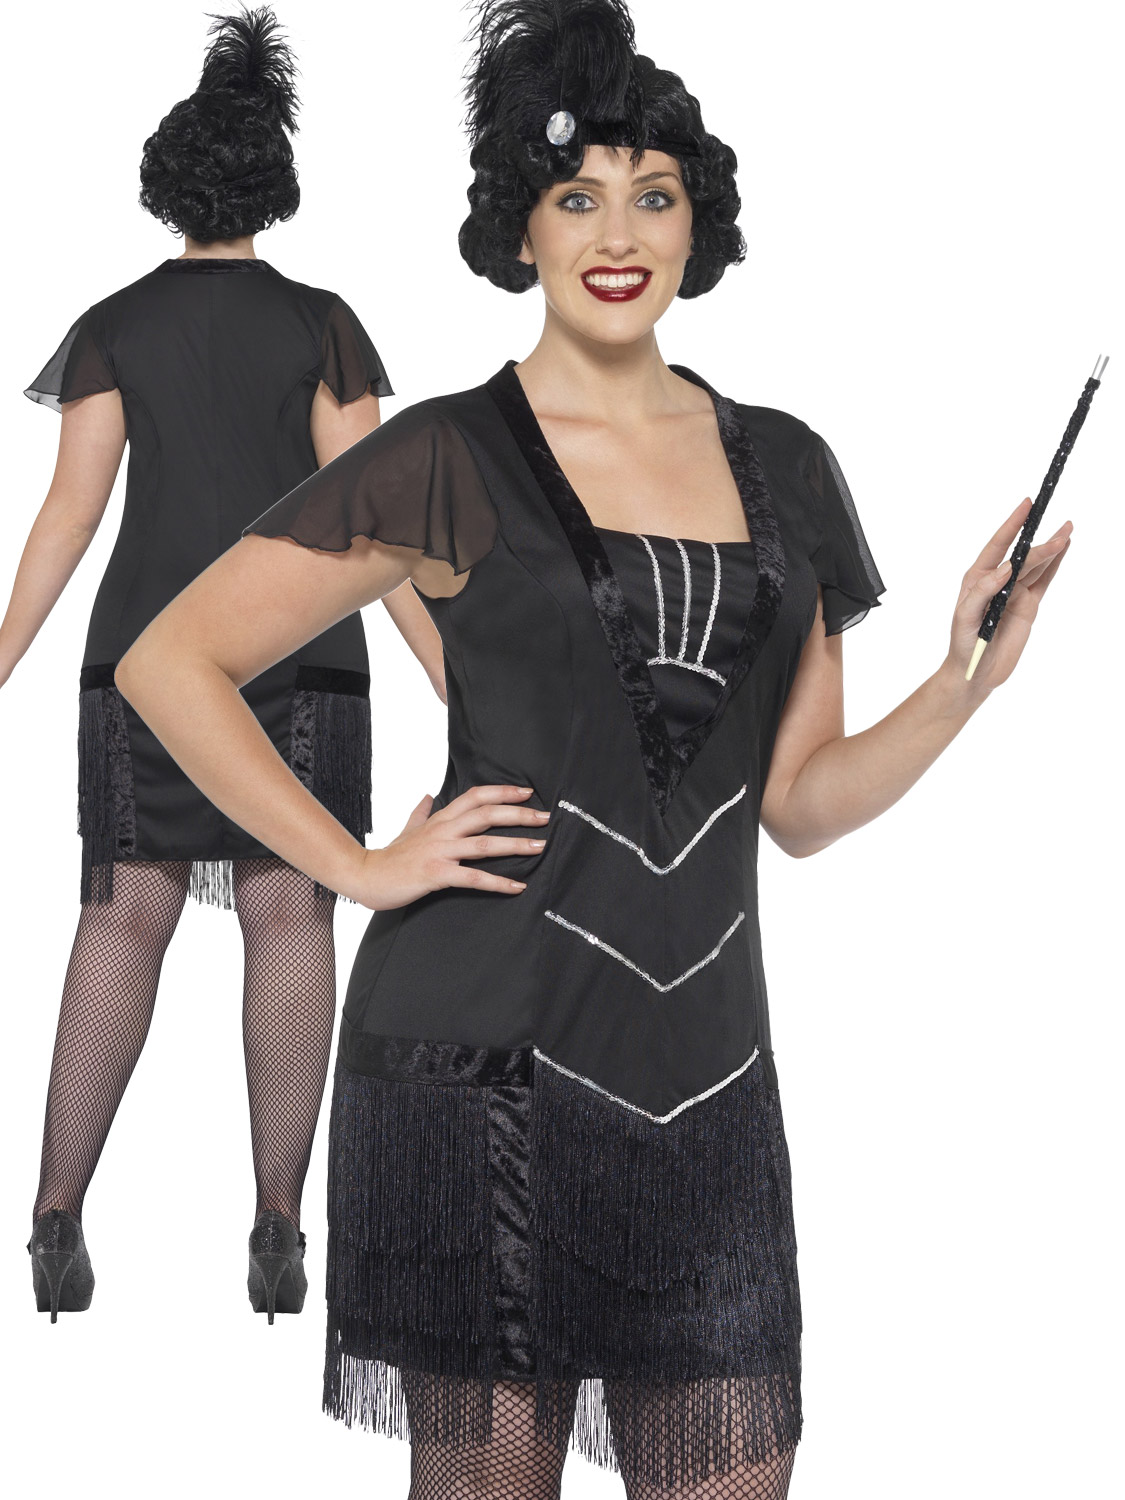 Ladies curves flapper costume adult charleston fancy dress plus size transform yourself into a sexy 1920s flapper with this ladies curves dress ideal if you are going to a great gatsby themed party solutioingenieria Gallery